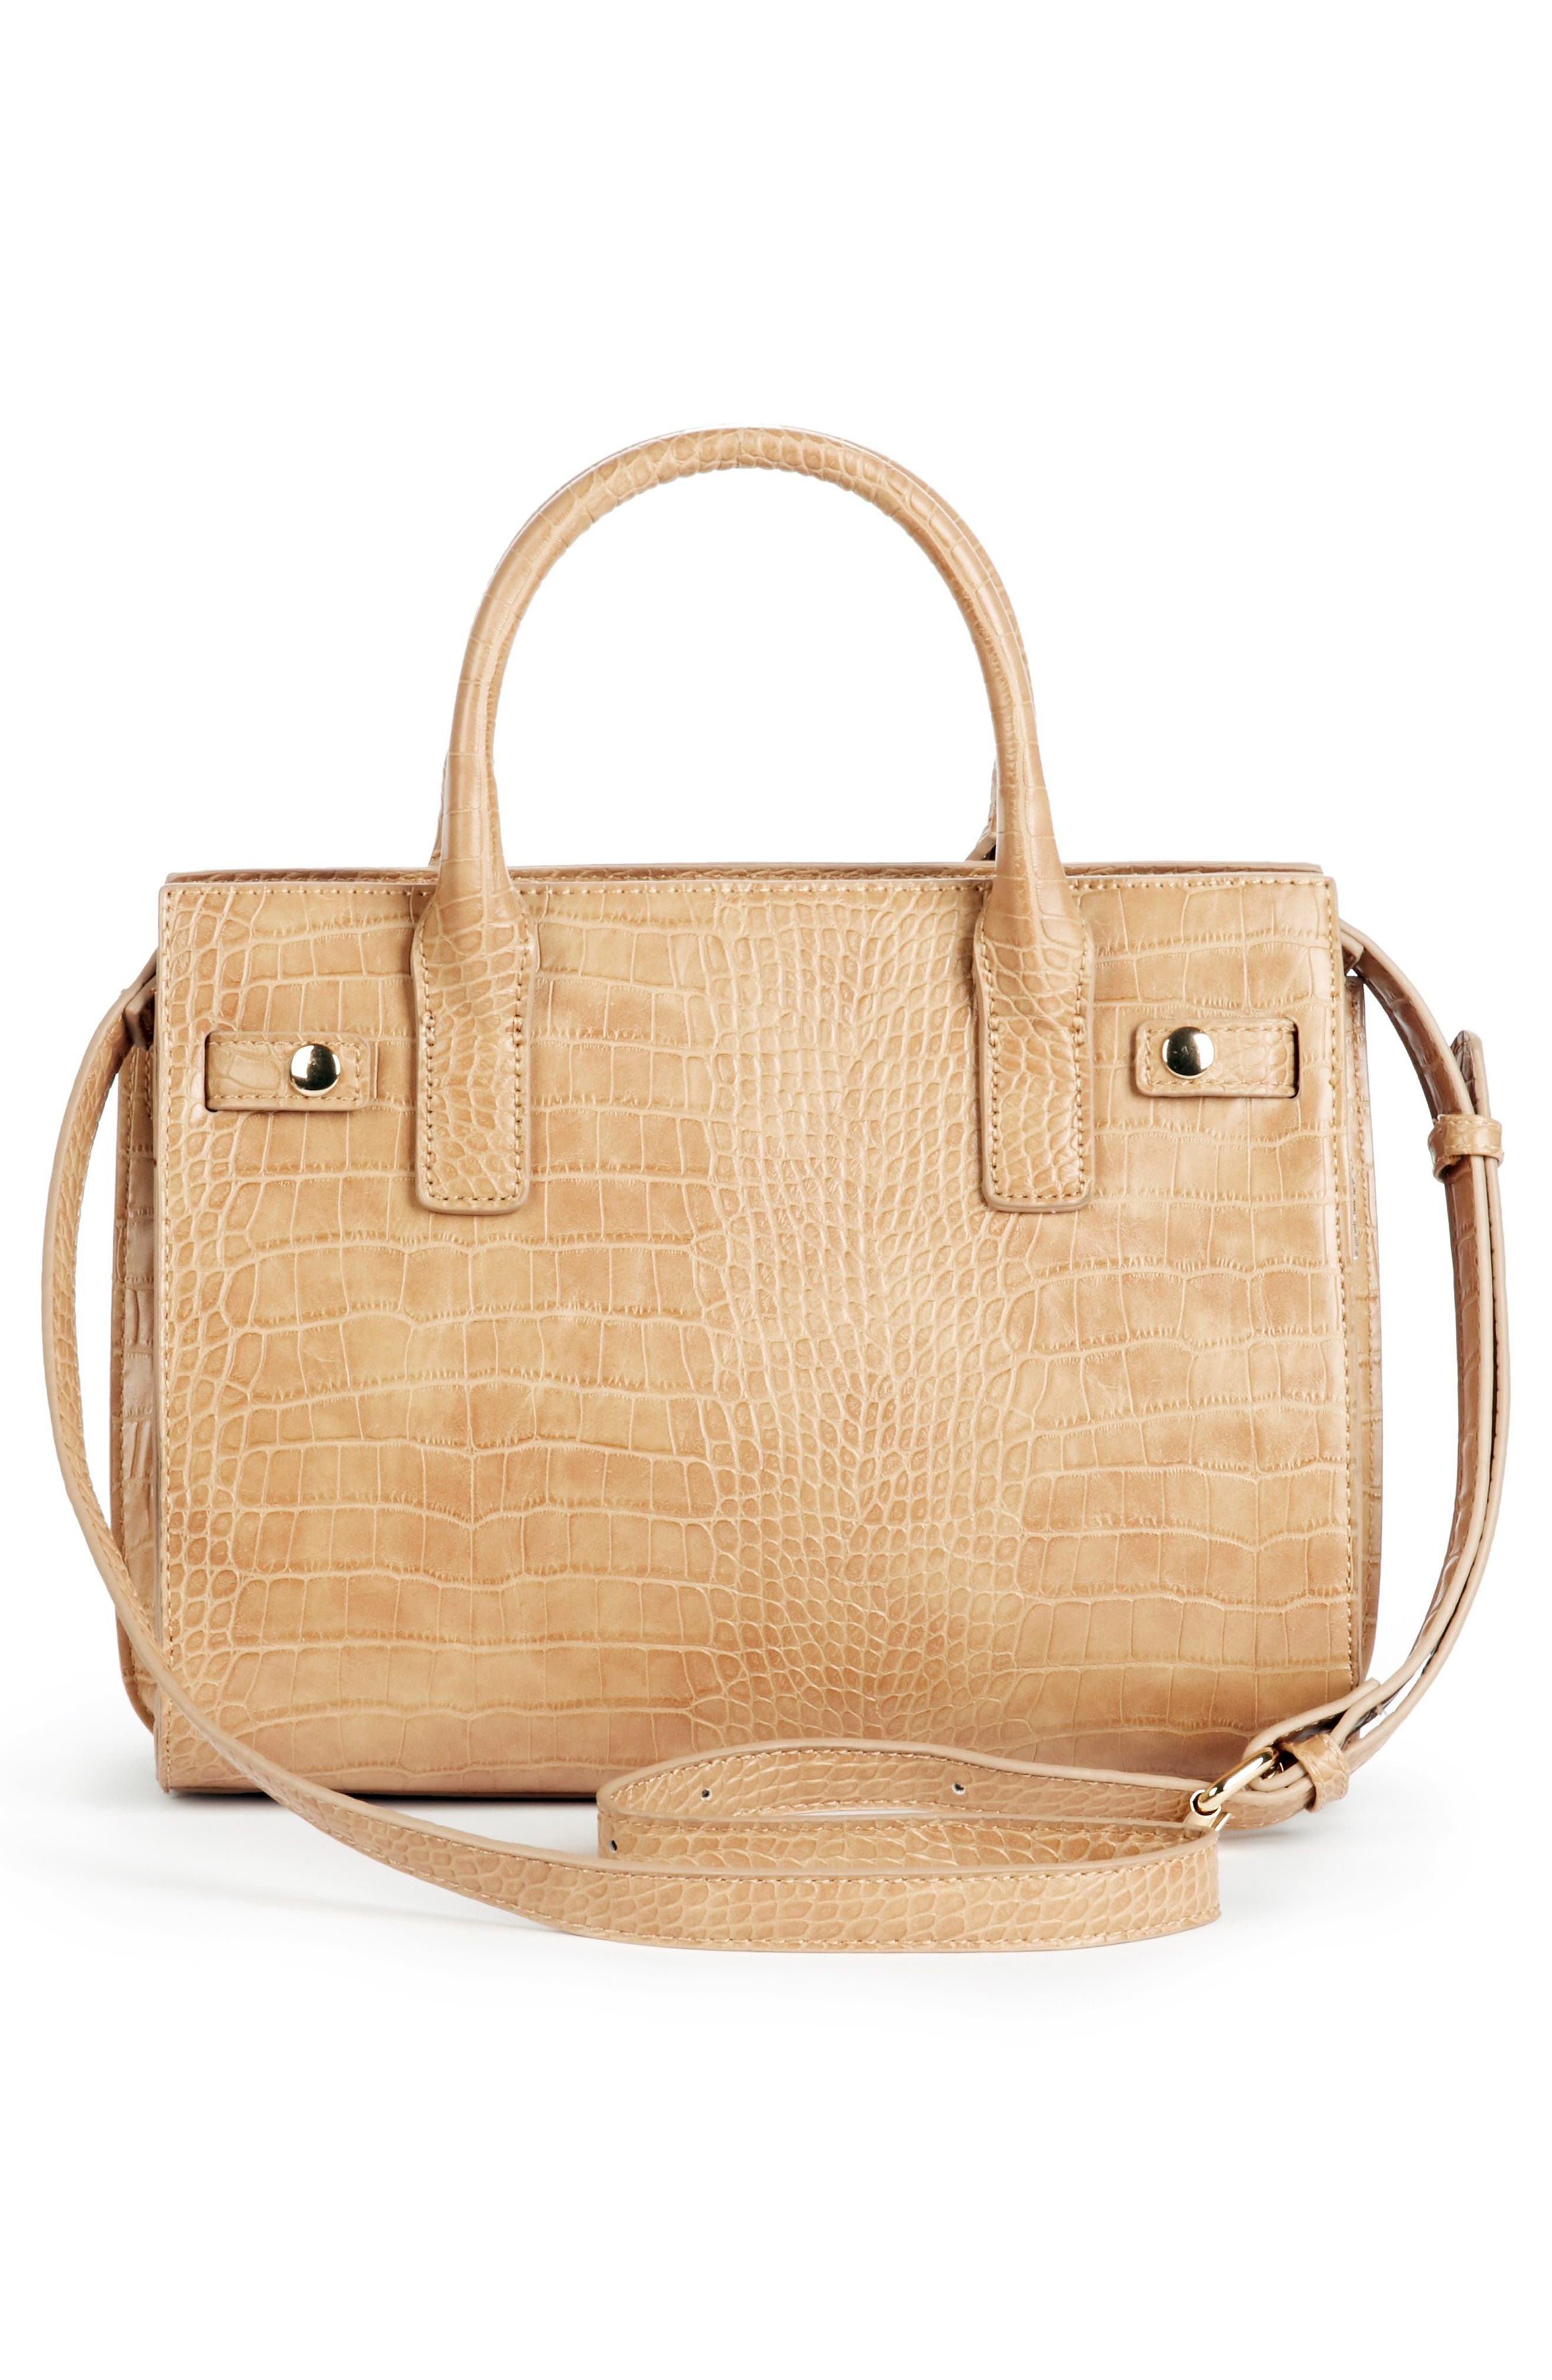 Medium Estella Faux Leather Satchel,                             Alternate thumbnail 2, color,                             CAMEL